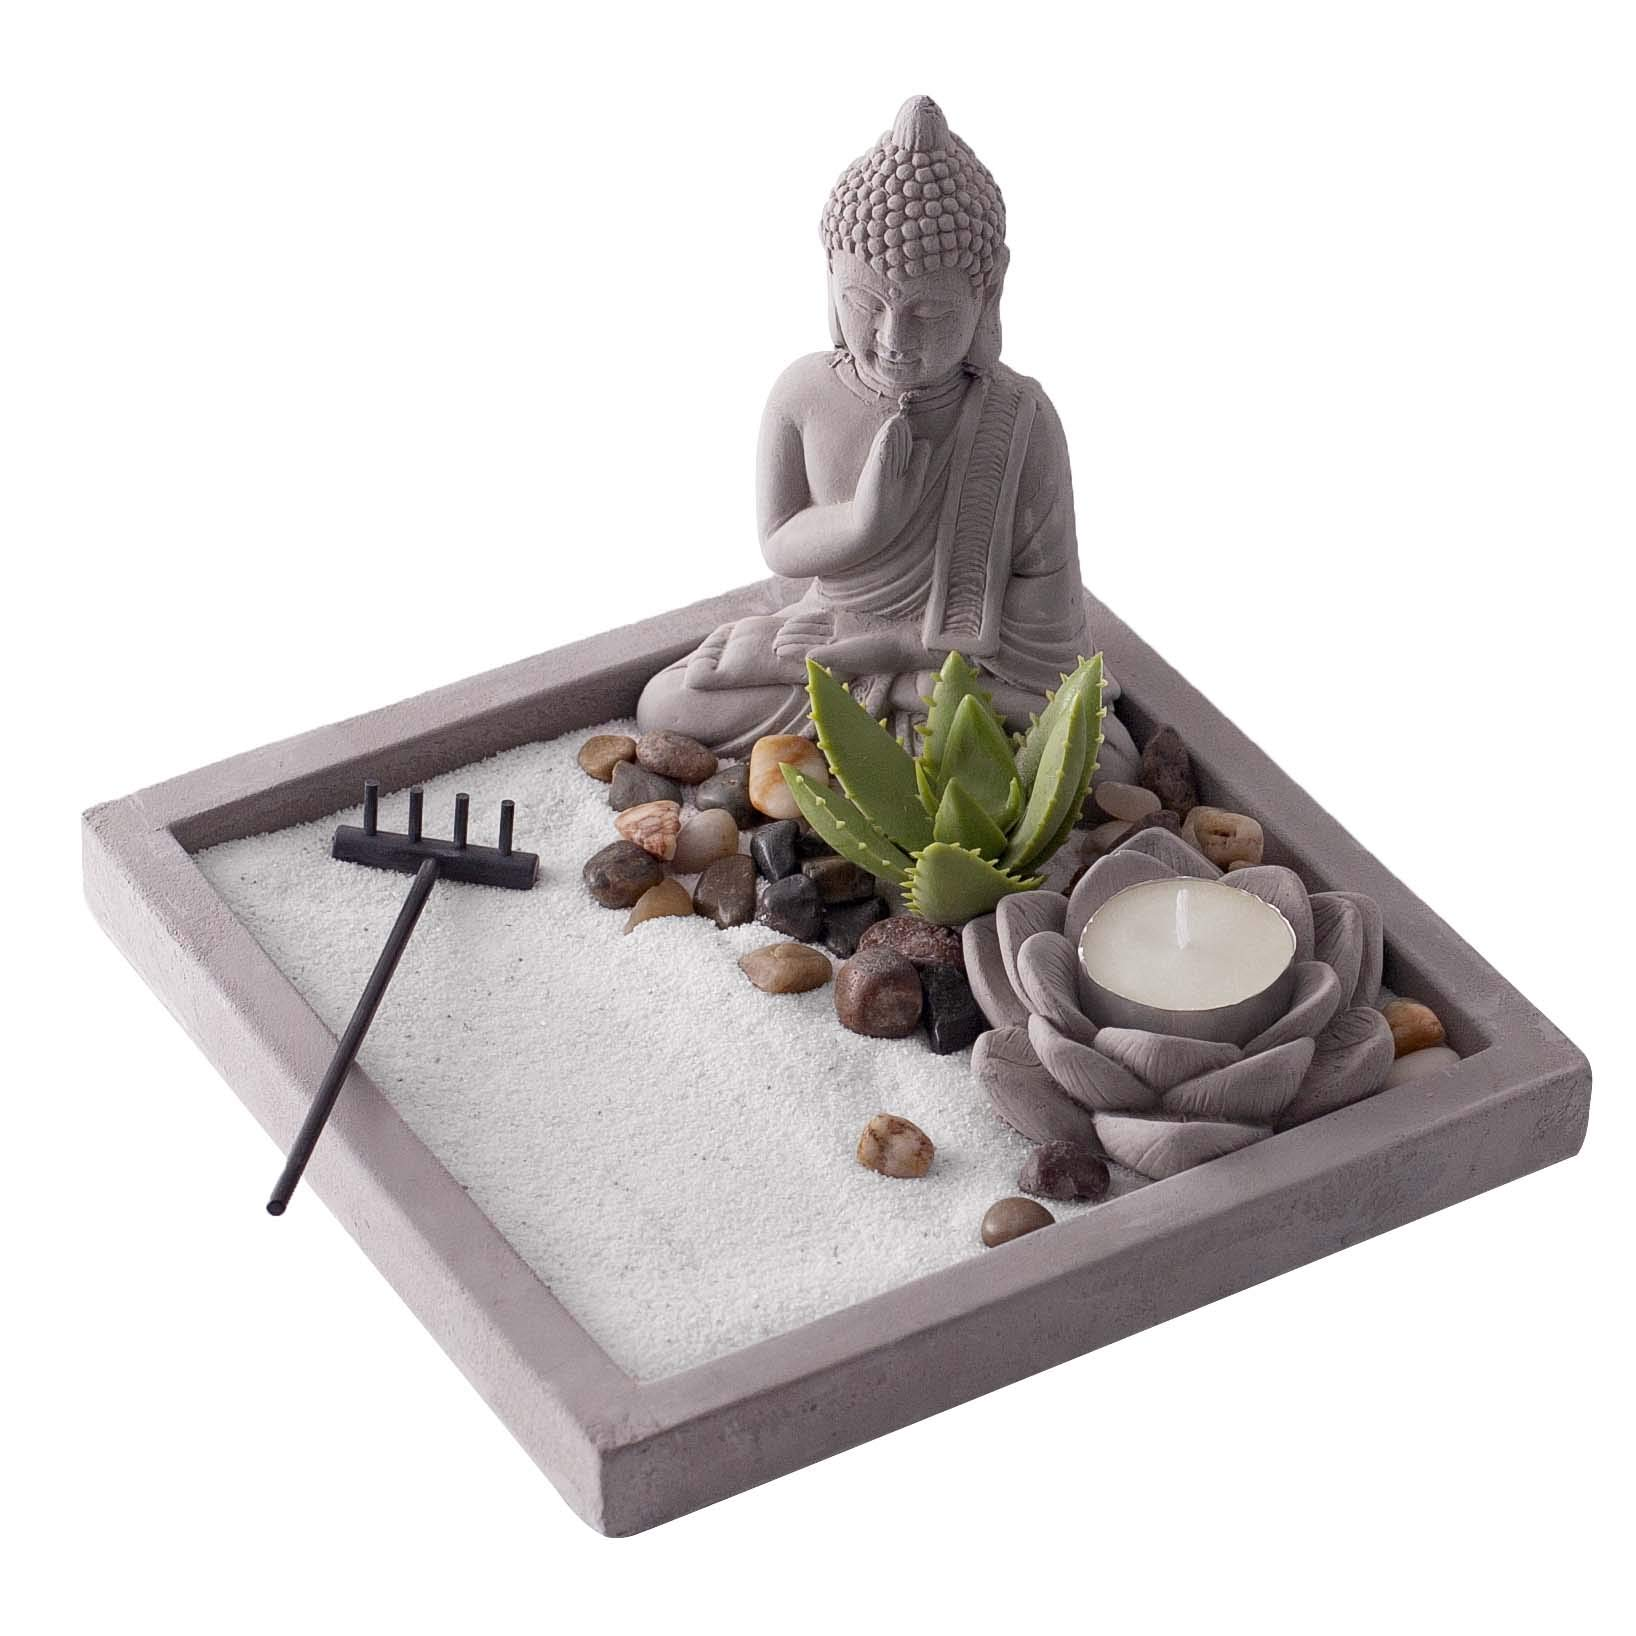 New Japanese Zen Sand Garden | Ideal Desk Decor to Enhance Mindfulness and Practice Meditation During the Day | Sandstone Finish with White Sand by Existentials by Existentials